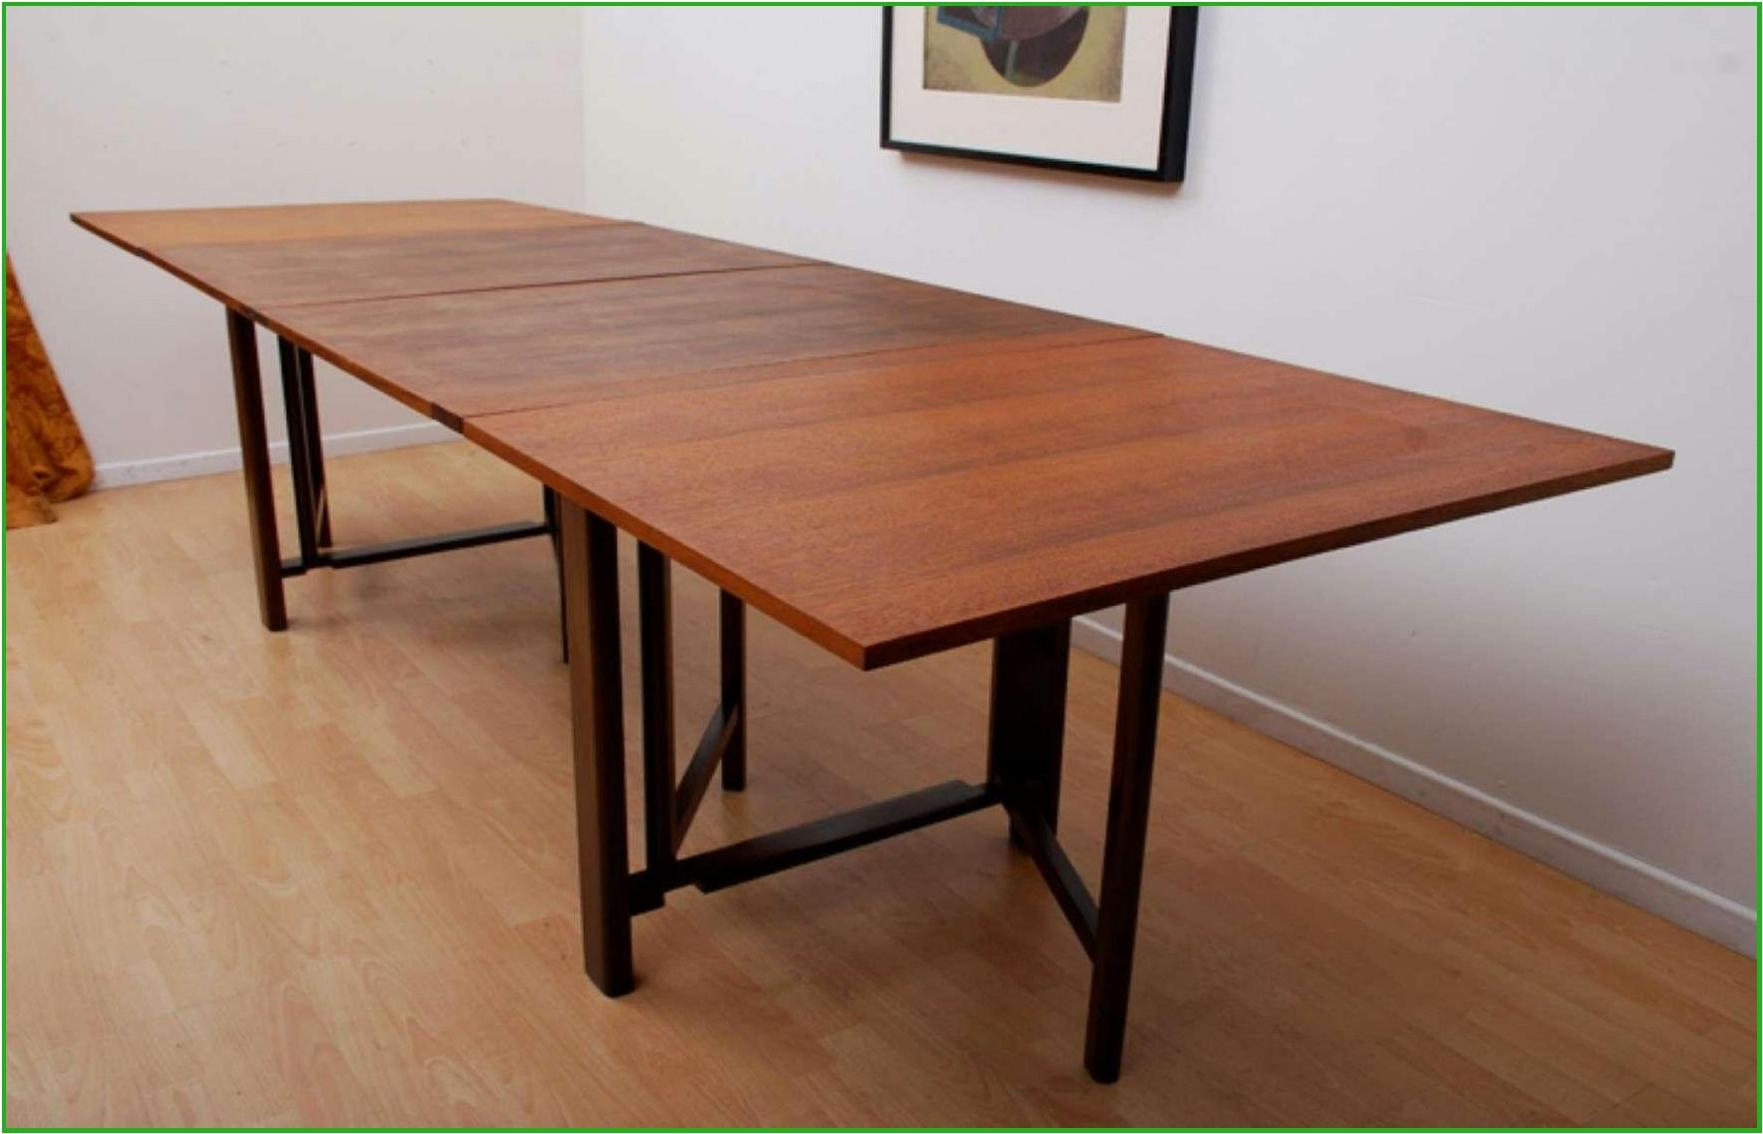 Various ideas of folding dining table with a bunch of benefits for a home with a small dining - Foldable dining table ...